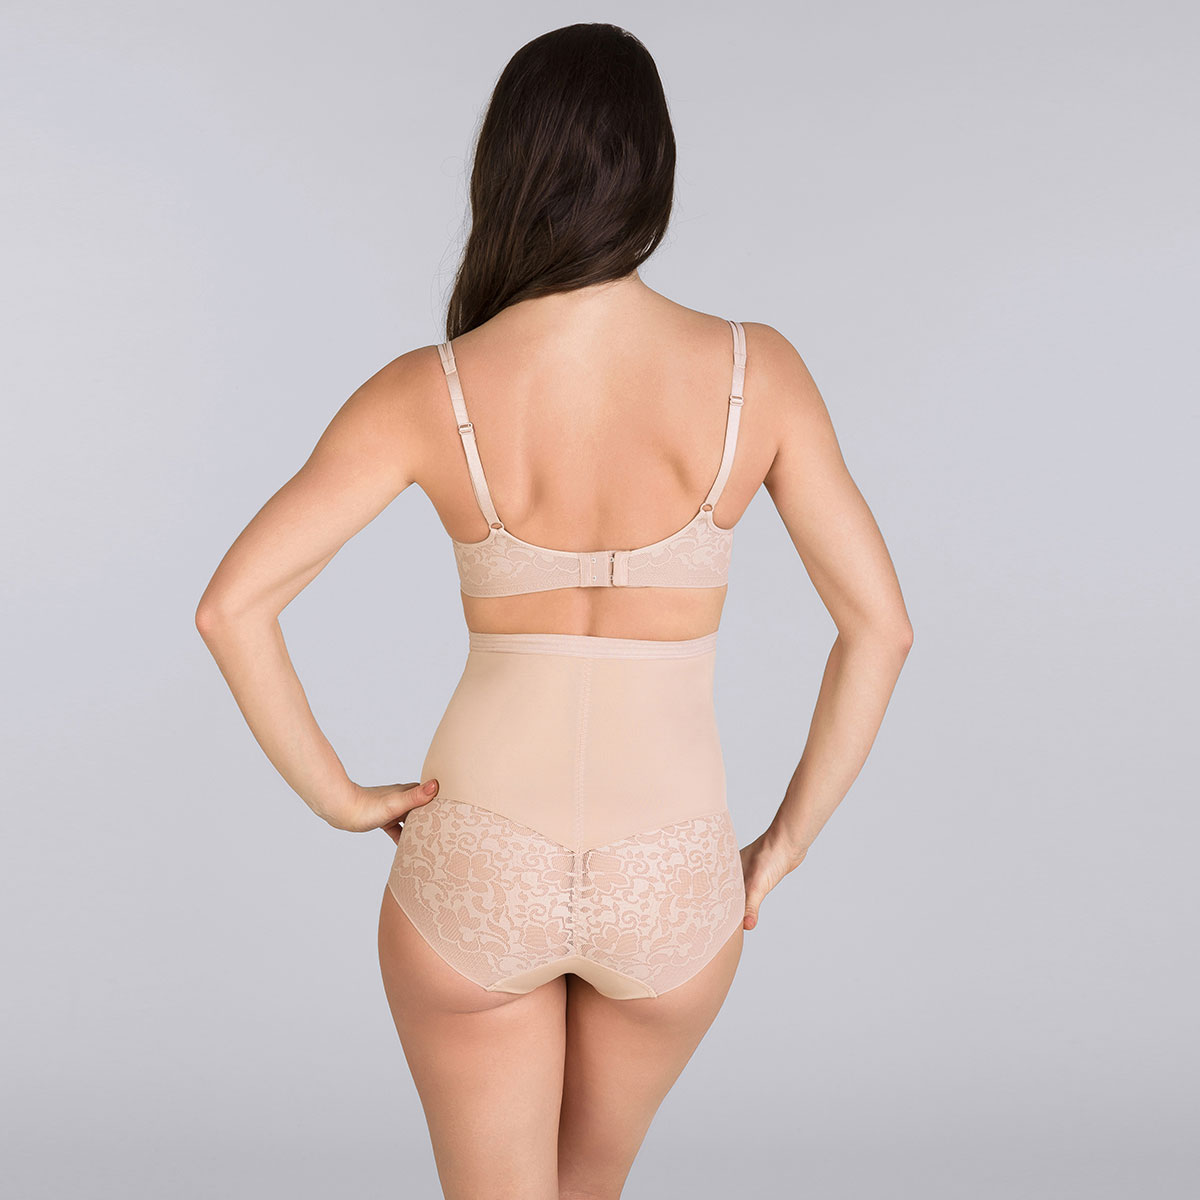 Beige high-waisted girdle - Expert in Silhouette-PLAYTEX